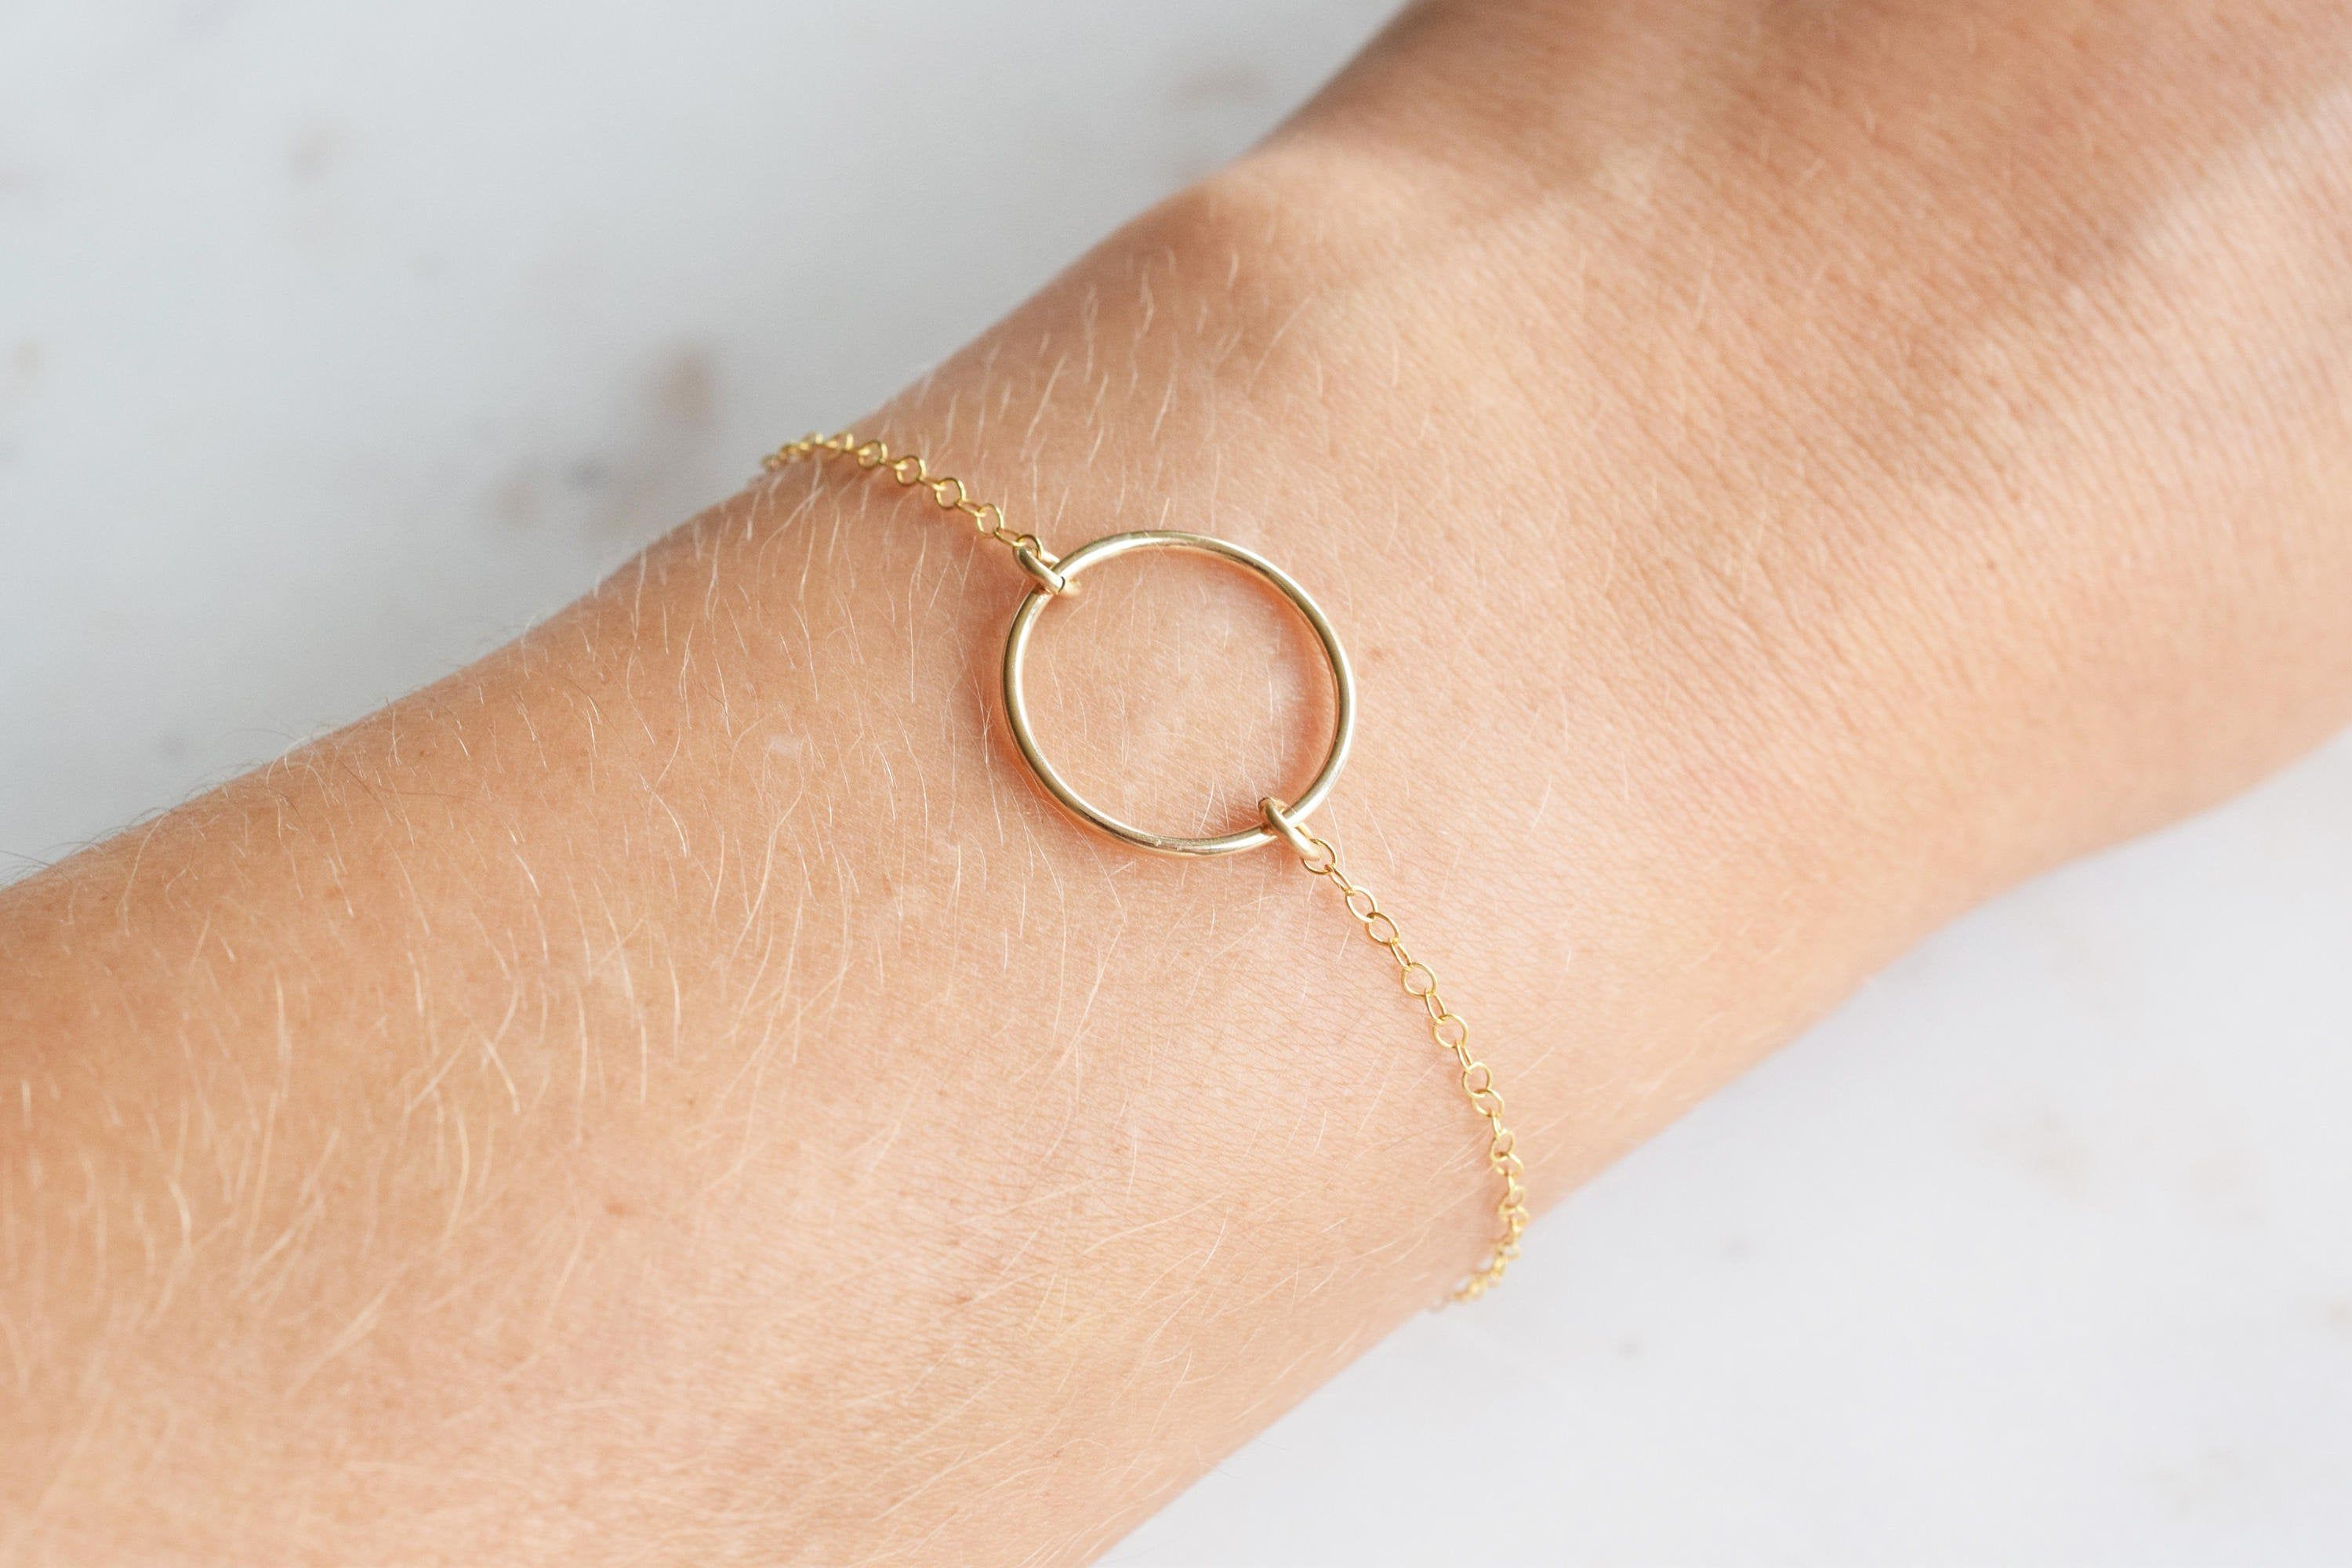 Photo of JOLIE 14K Gold Filled Circle Bracelet, Simple Charm Bracelet, US made, Handcrafted Handmade Jewelry, Dainty Jewelry, Minimalist Gift for her